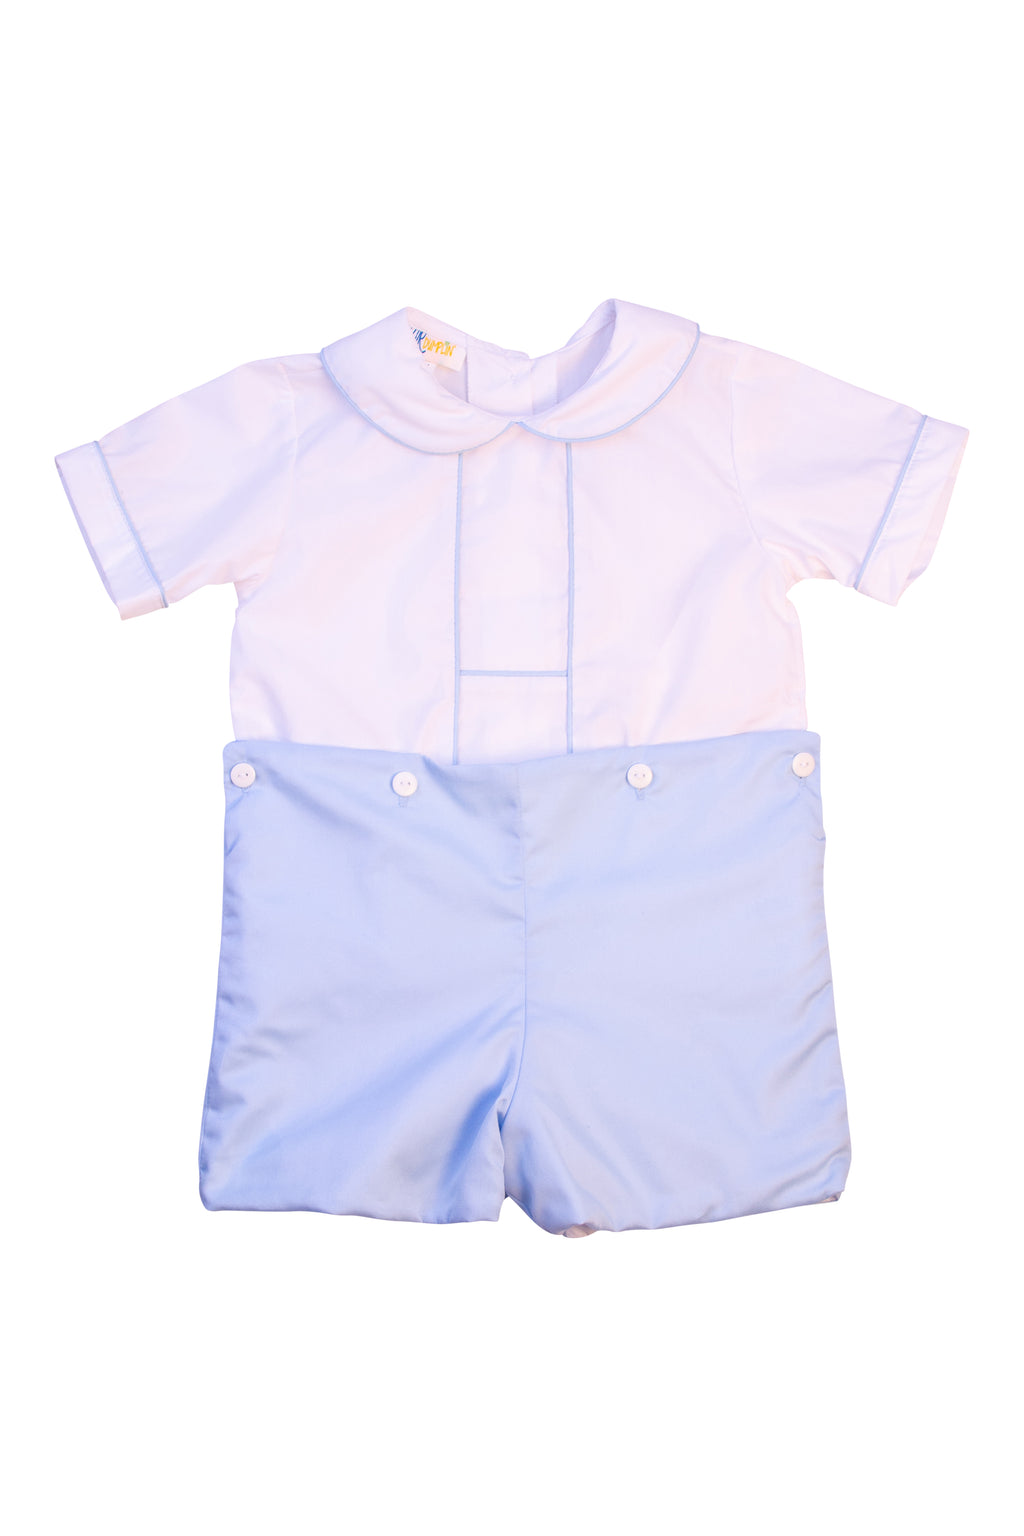 Boys White/Blue Button-On Short Set